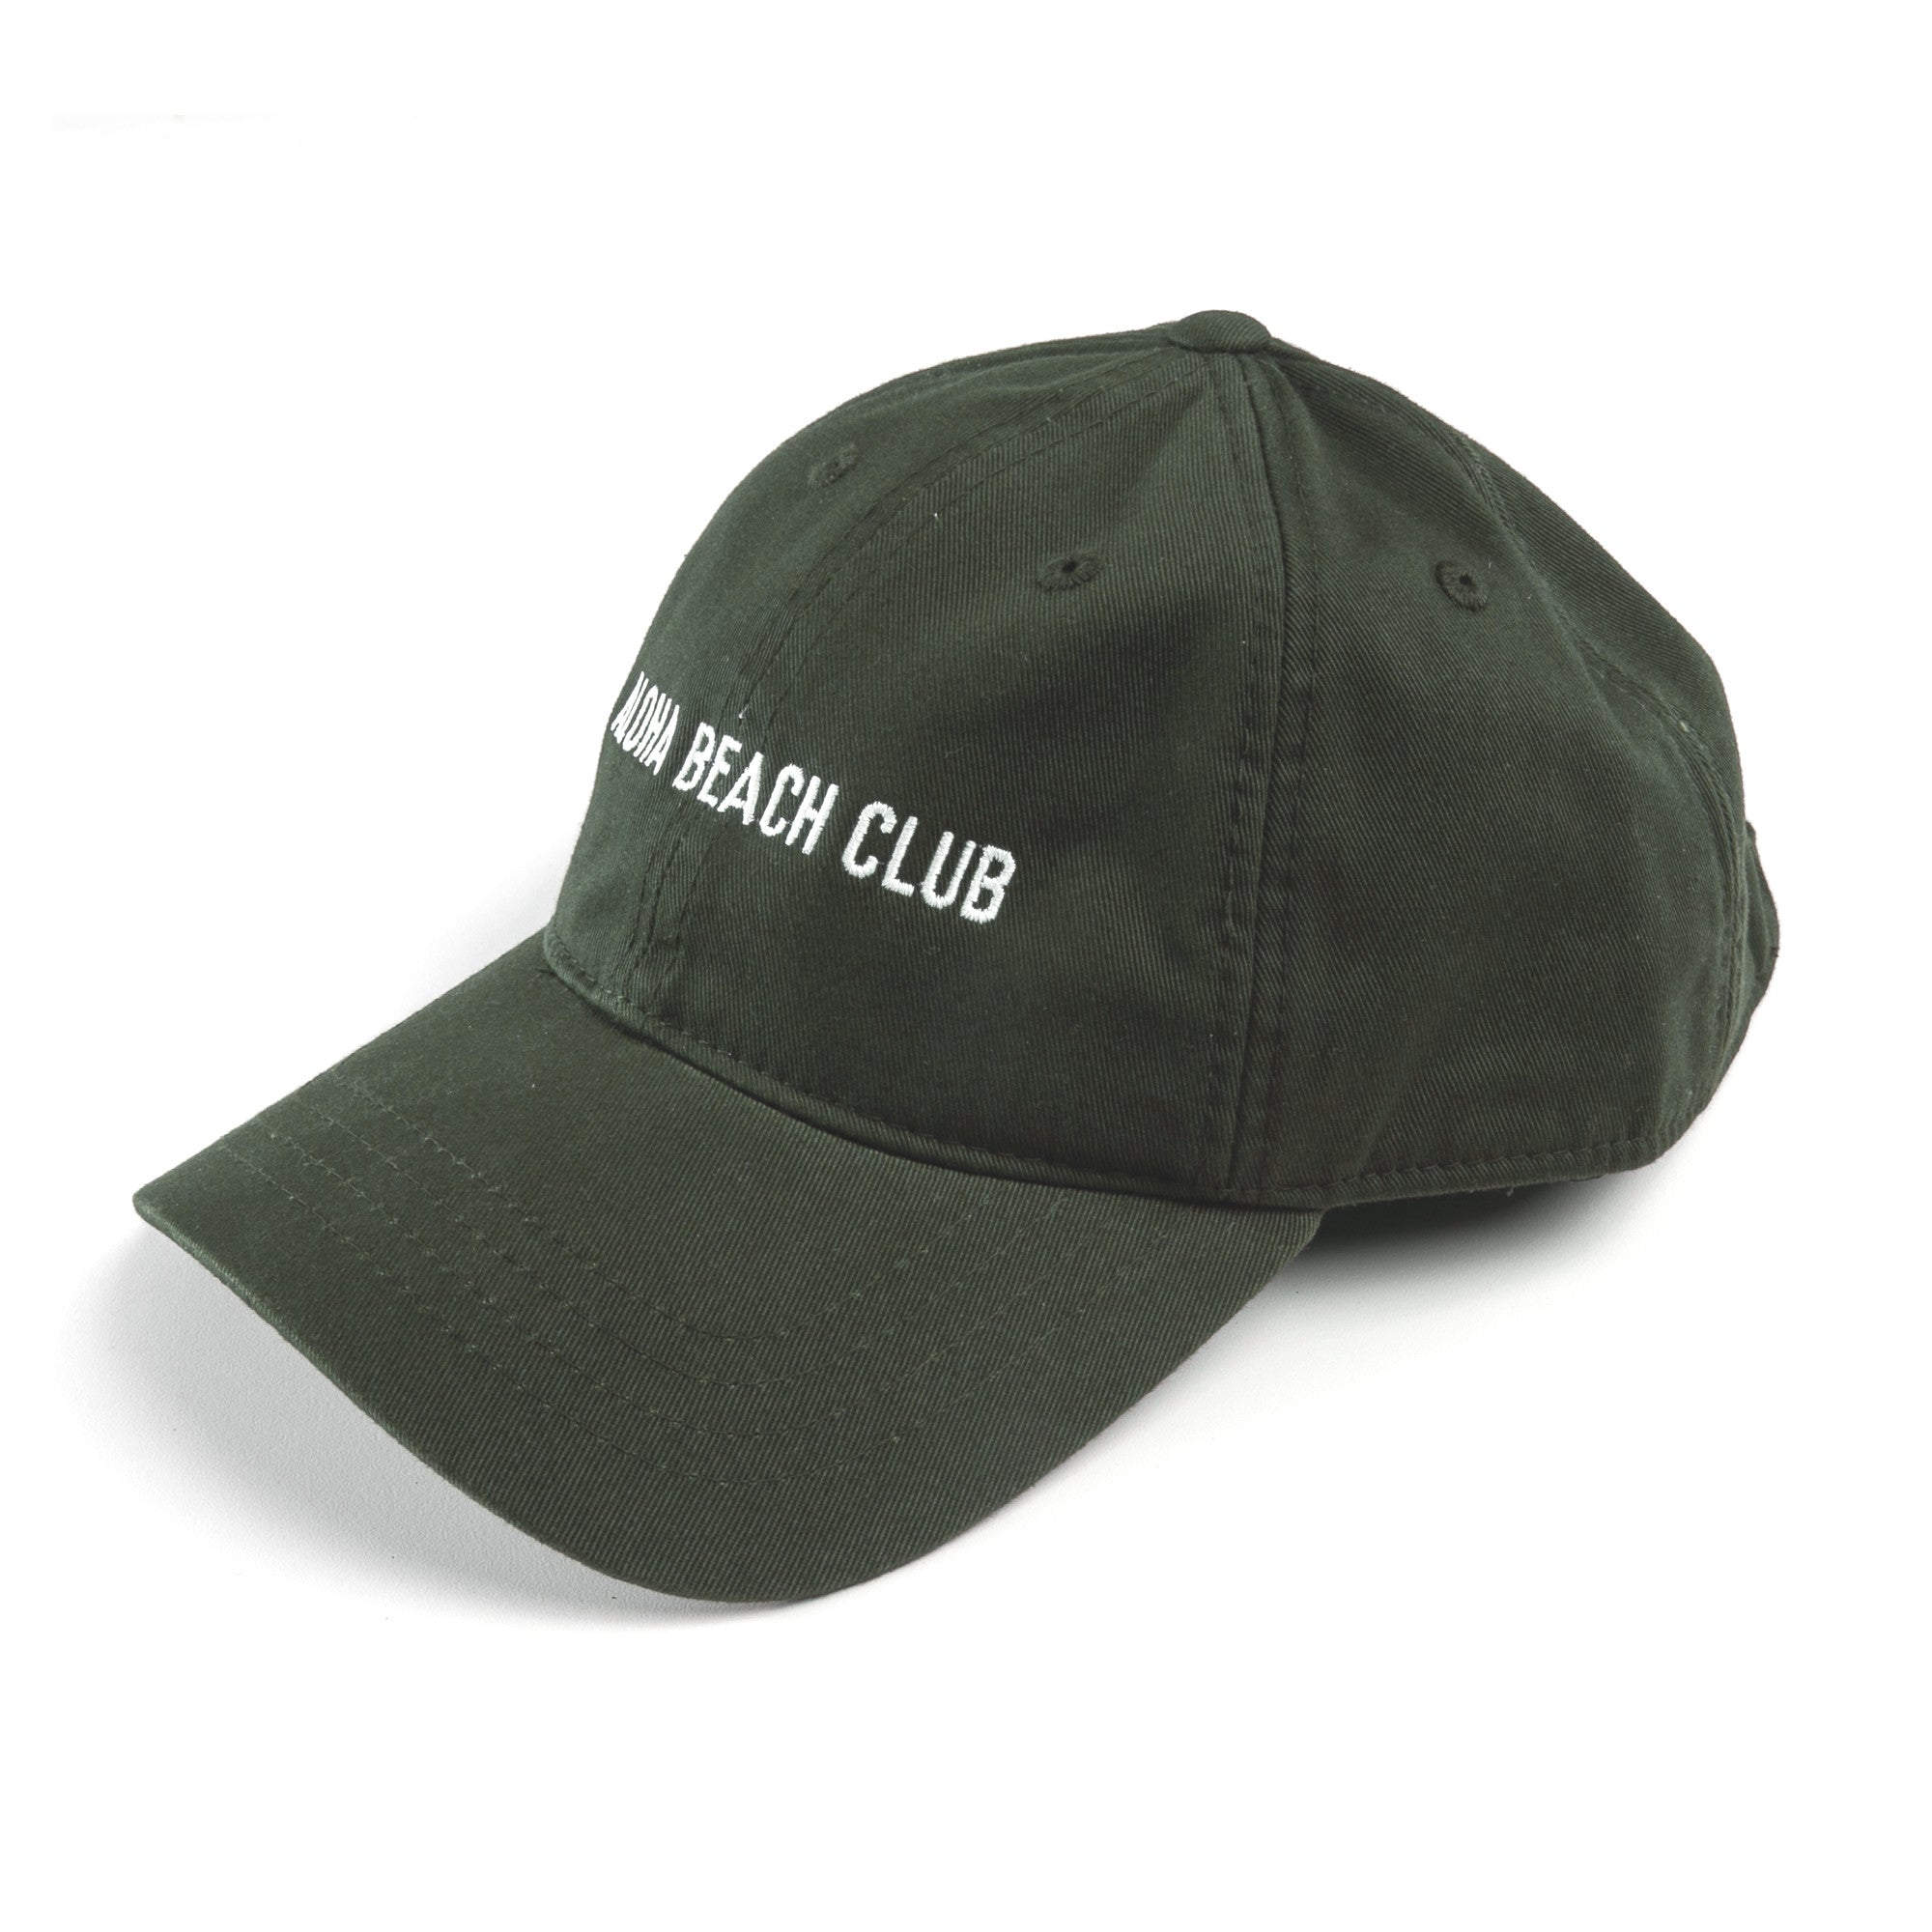 Aloha Beach Club - ABC Polo Cap Military - Aloha Beach Club